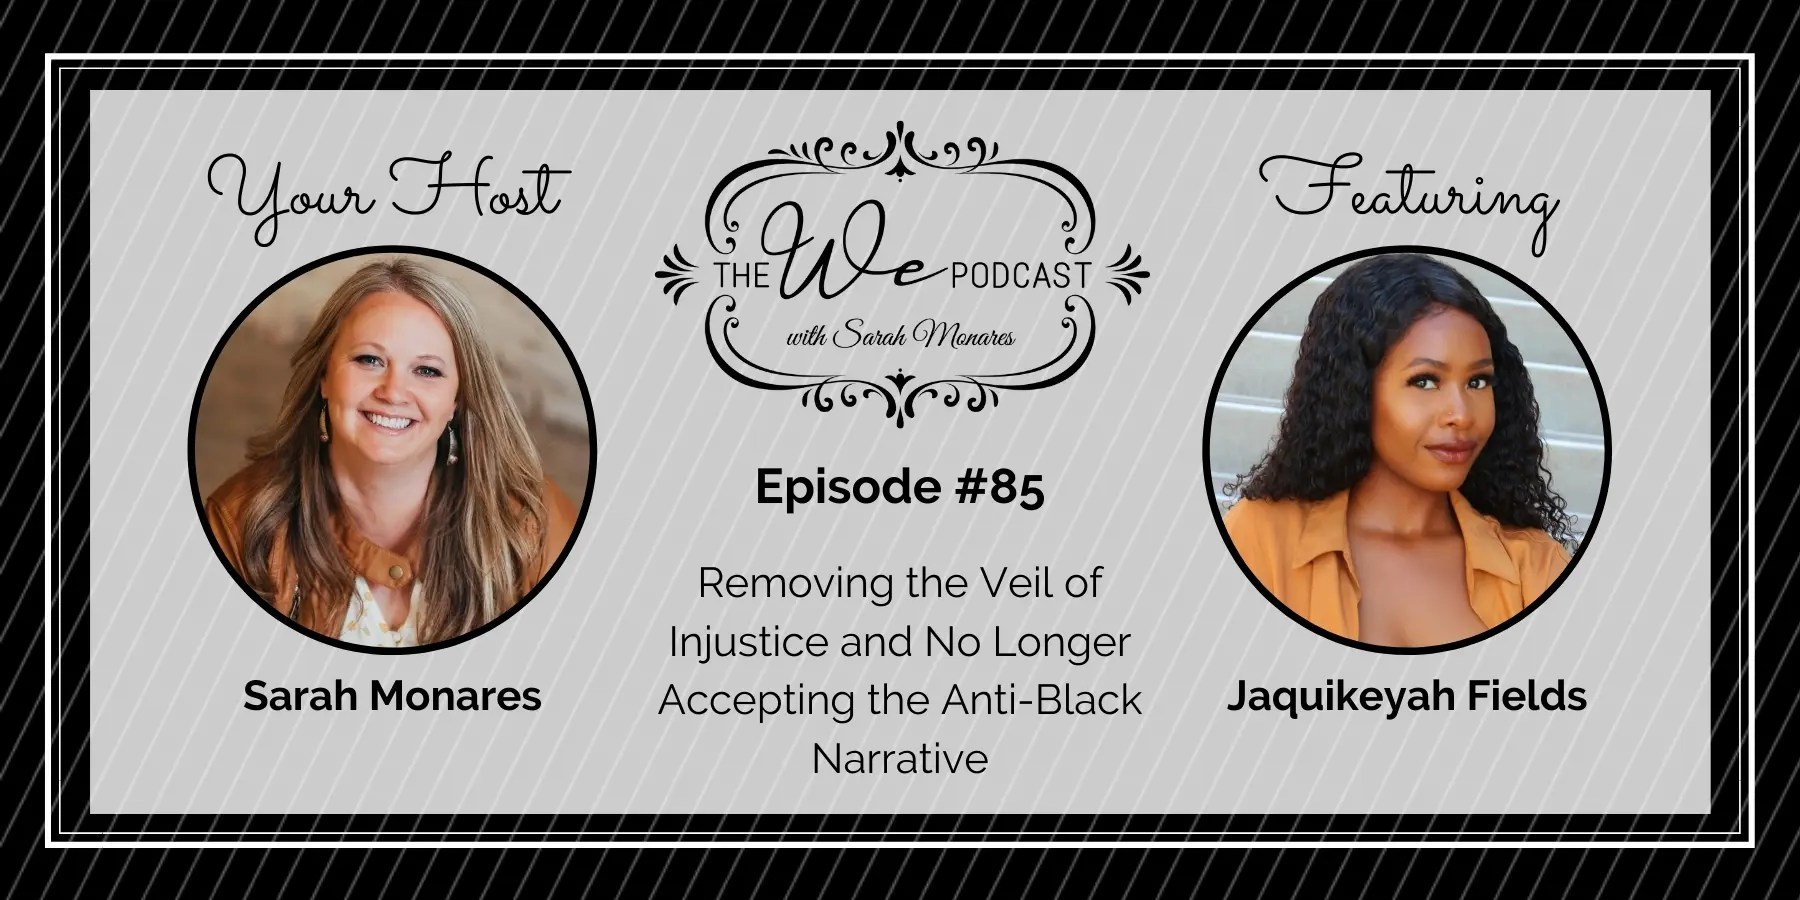 The We Podcast #85: Jaquikeyah Fields- Removing the Veil of Injustice